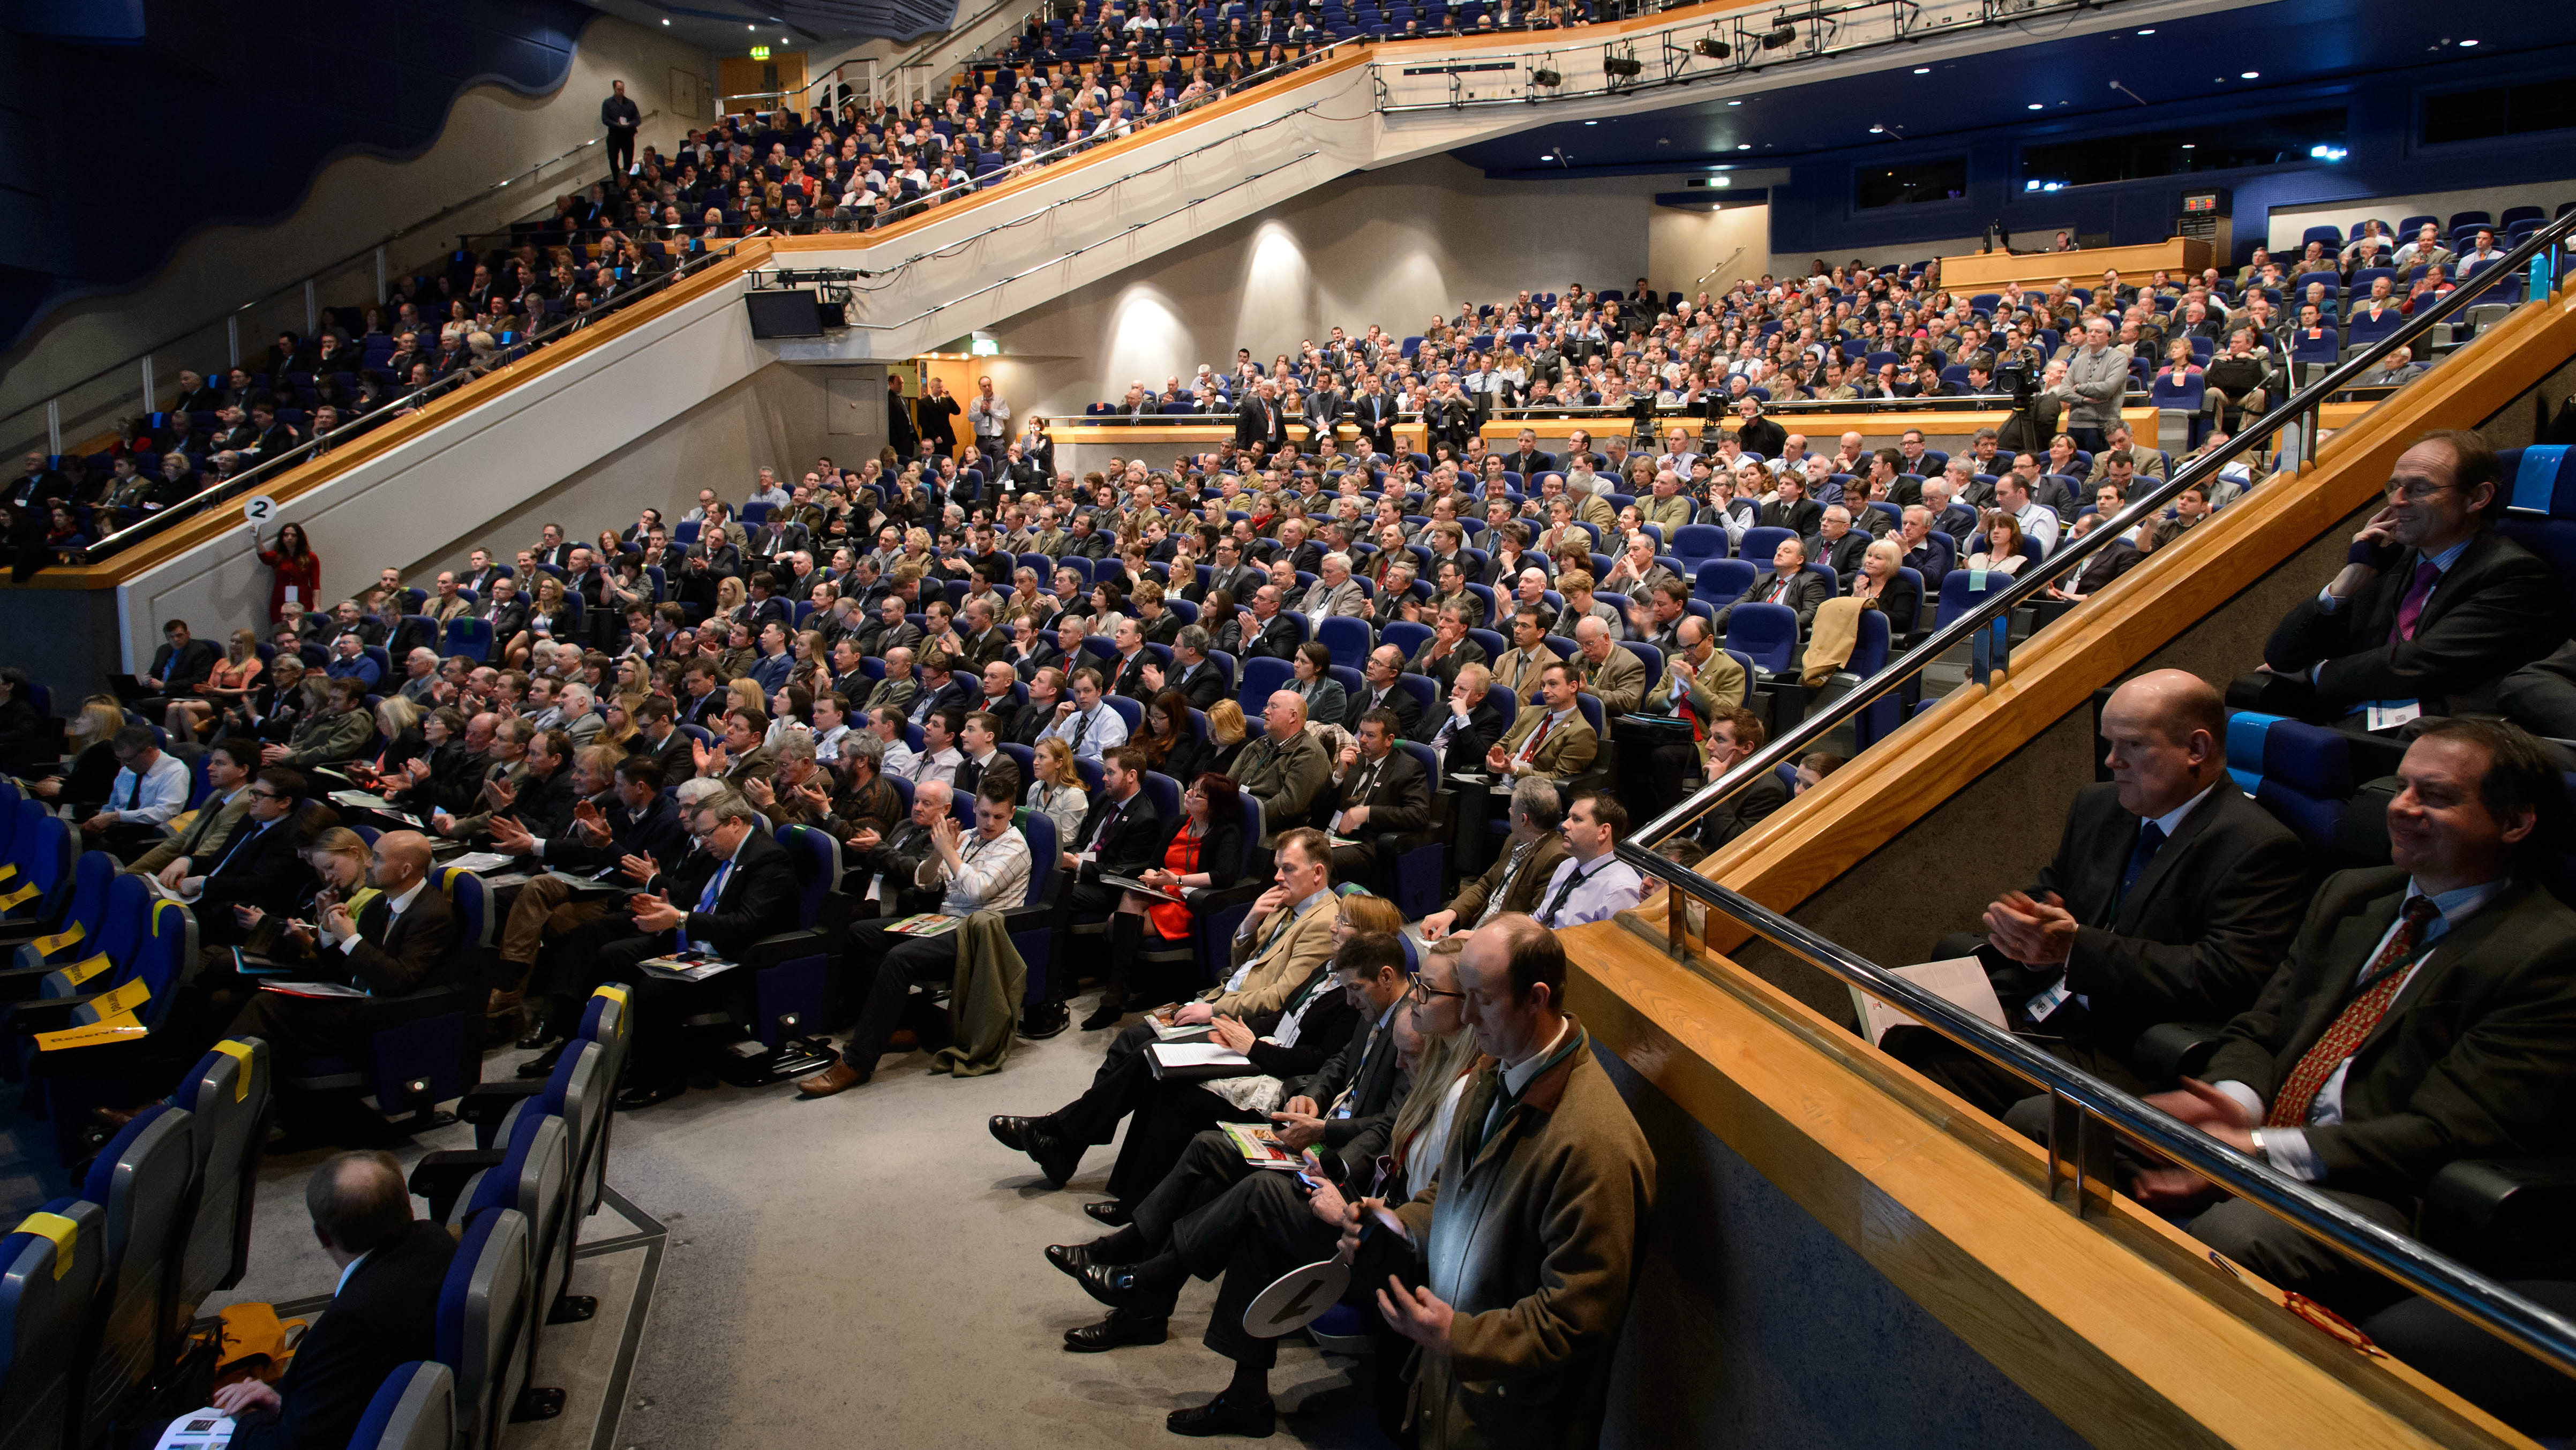 NFU15: Updates from NFU Conference